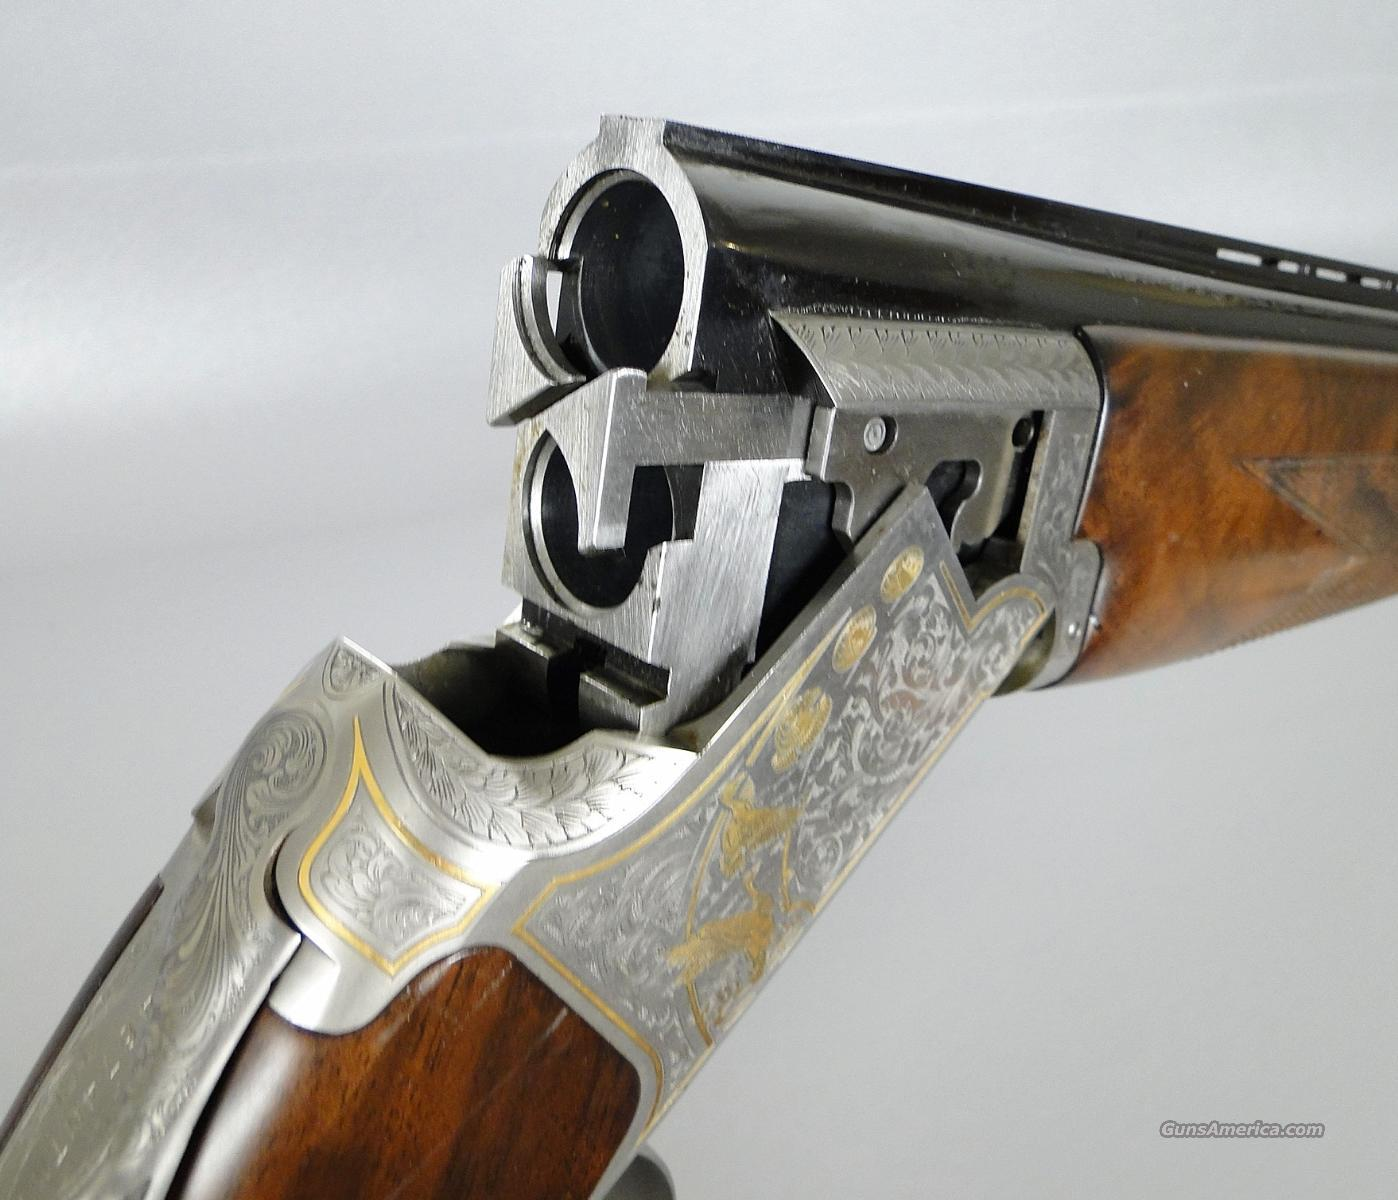 Browning 425 Golden Clays 12 Gauge Shotgun with 30 Inch Barrels  Guns > Shotguns > Browning Shotguns > Over Unders > Citori > Hunting